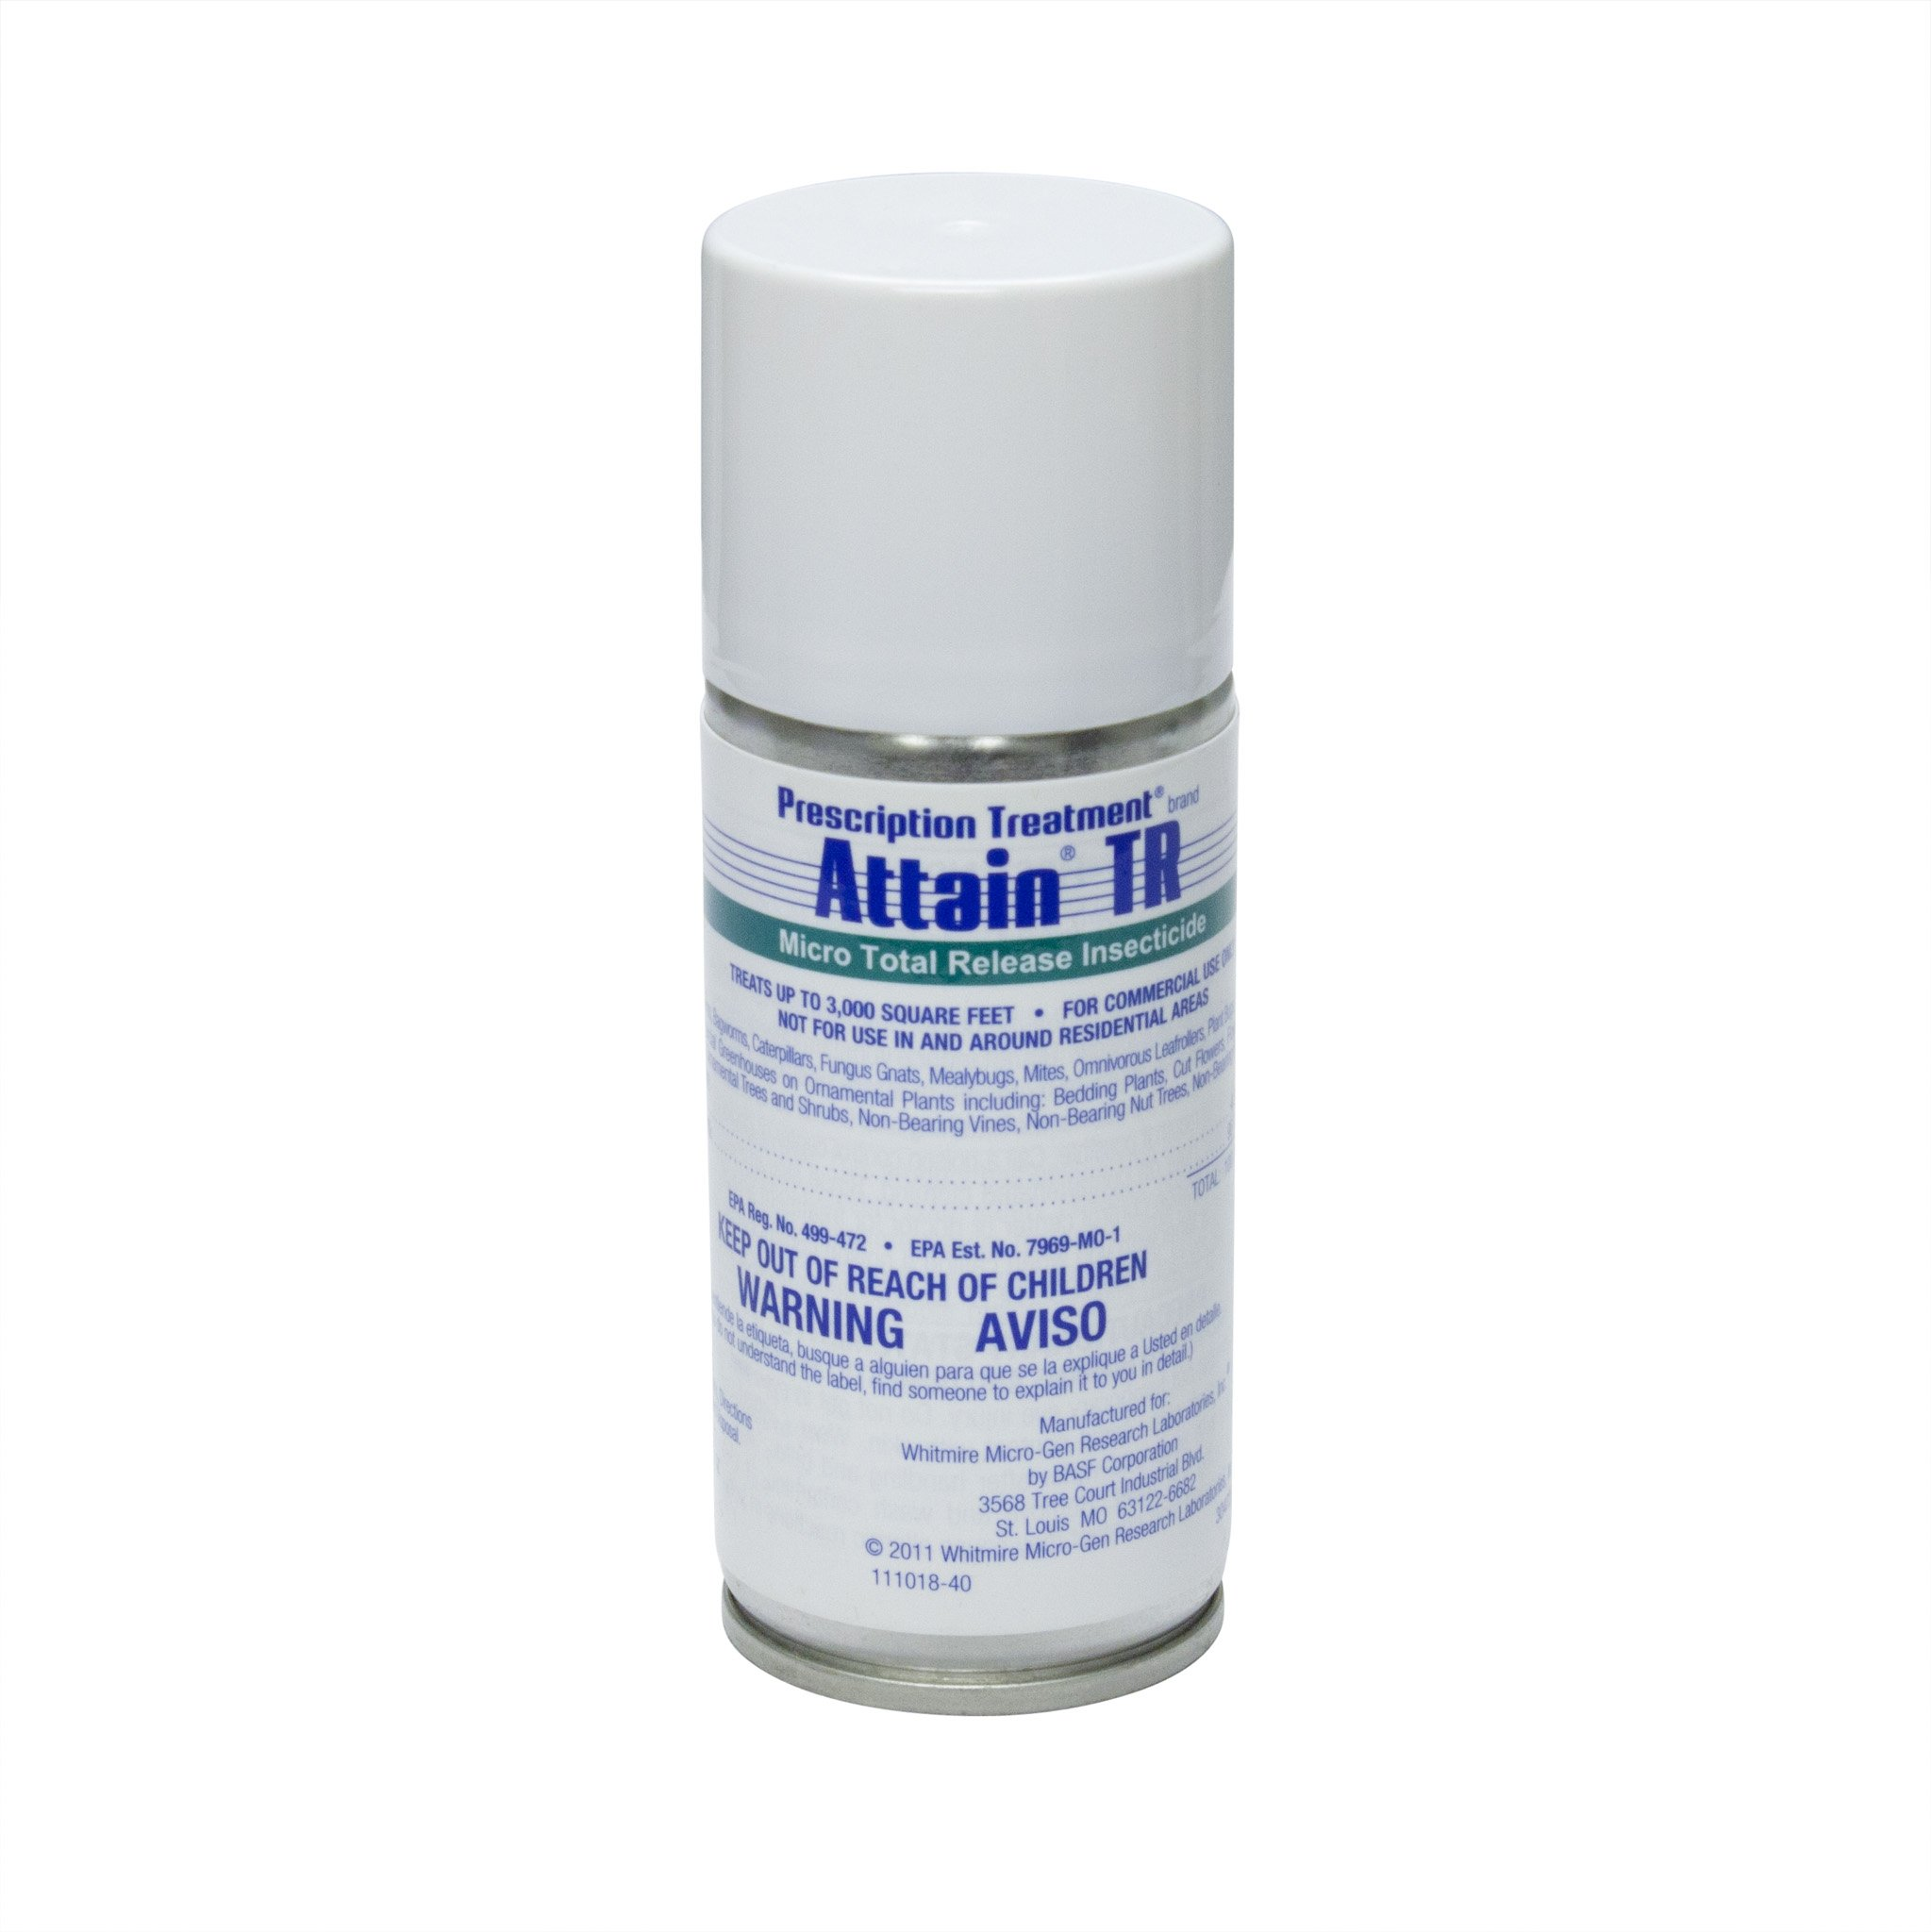 Attain TR Micro Total Release Insecticide (Bifenthrin) - 12X2 ounce case by BASF (Image #1)